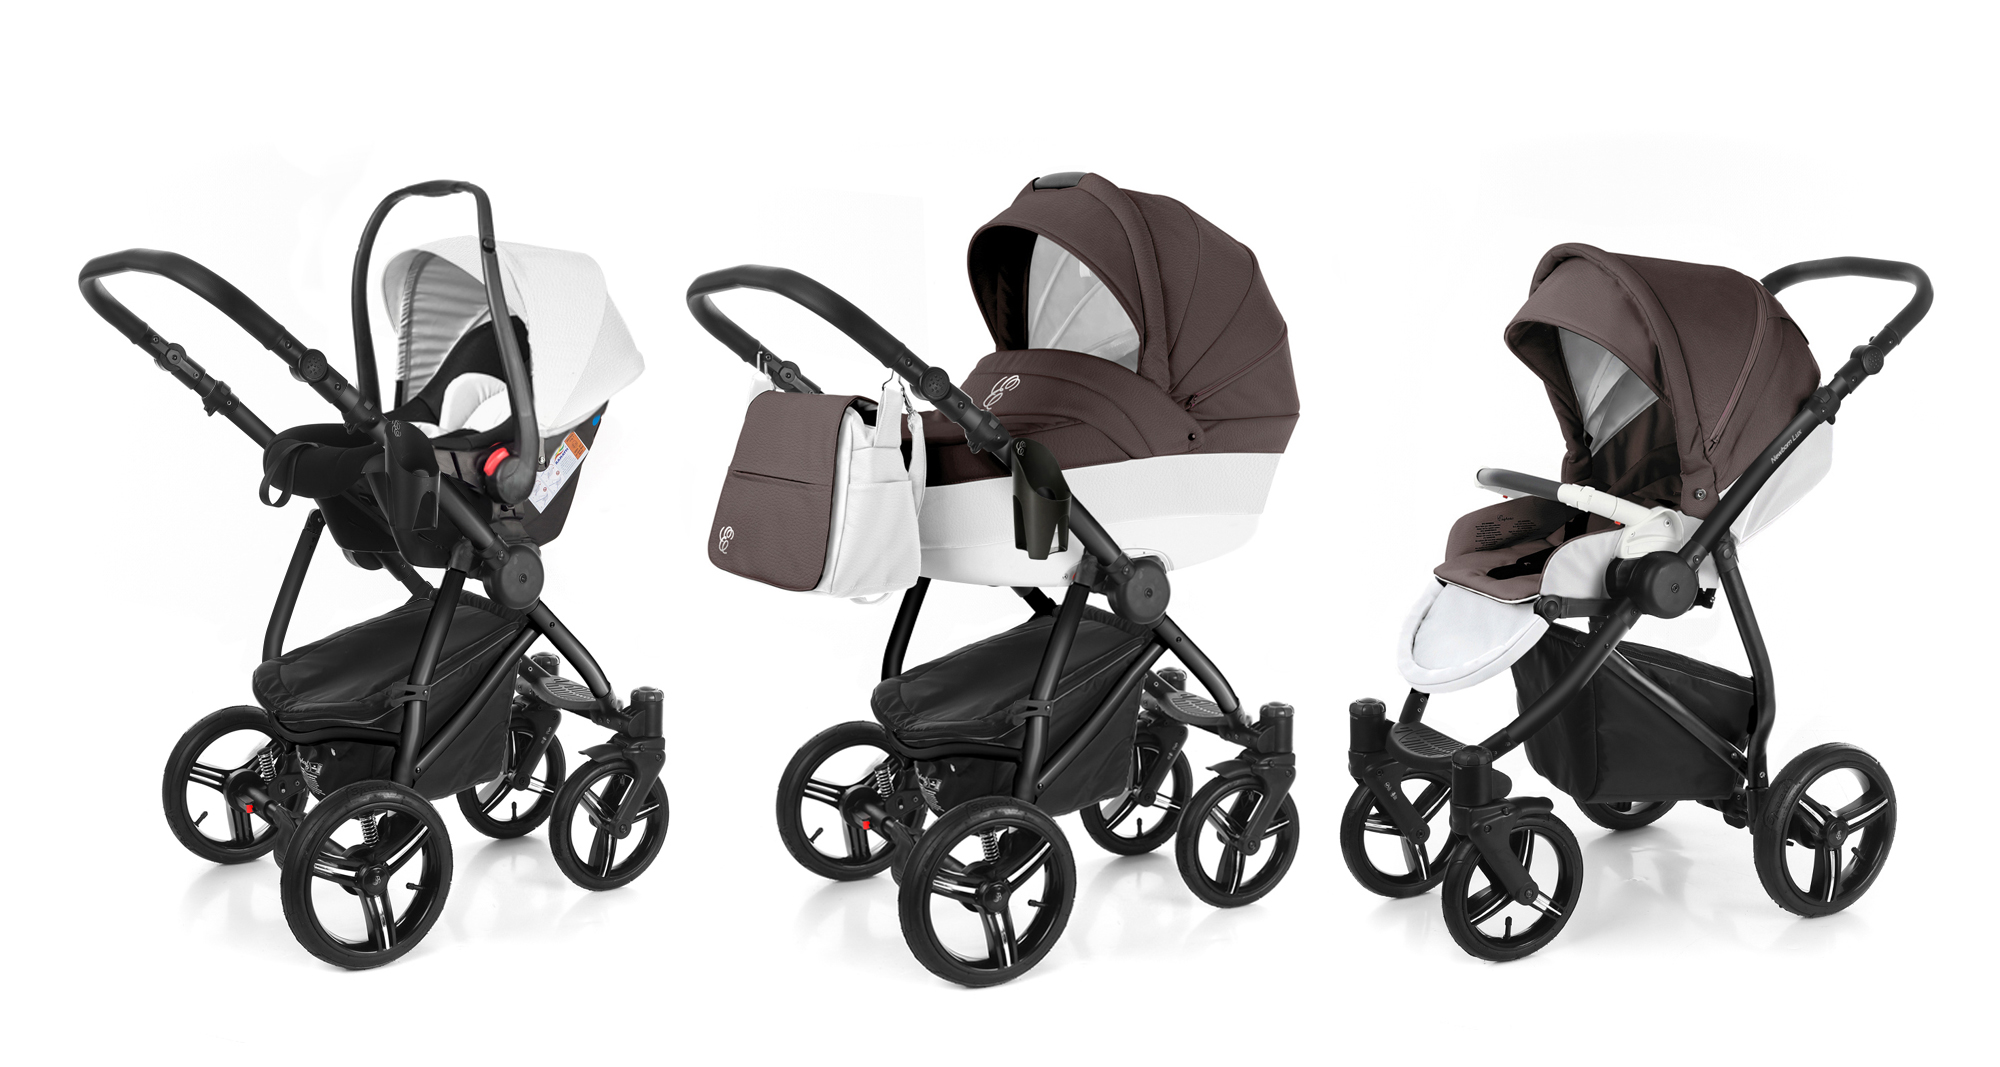 Коляска 3 в 1 Esspero Grand Newborn Lux (шасси Black). Фото N8